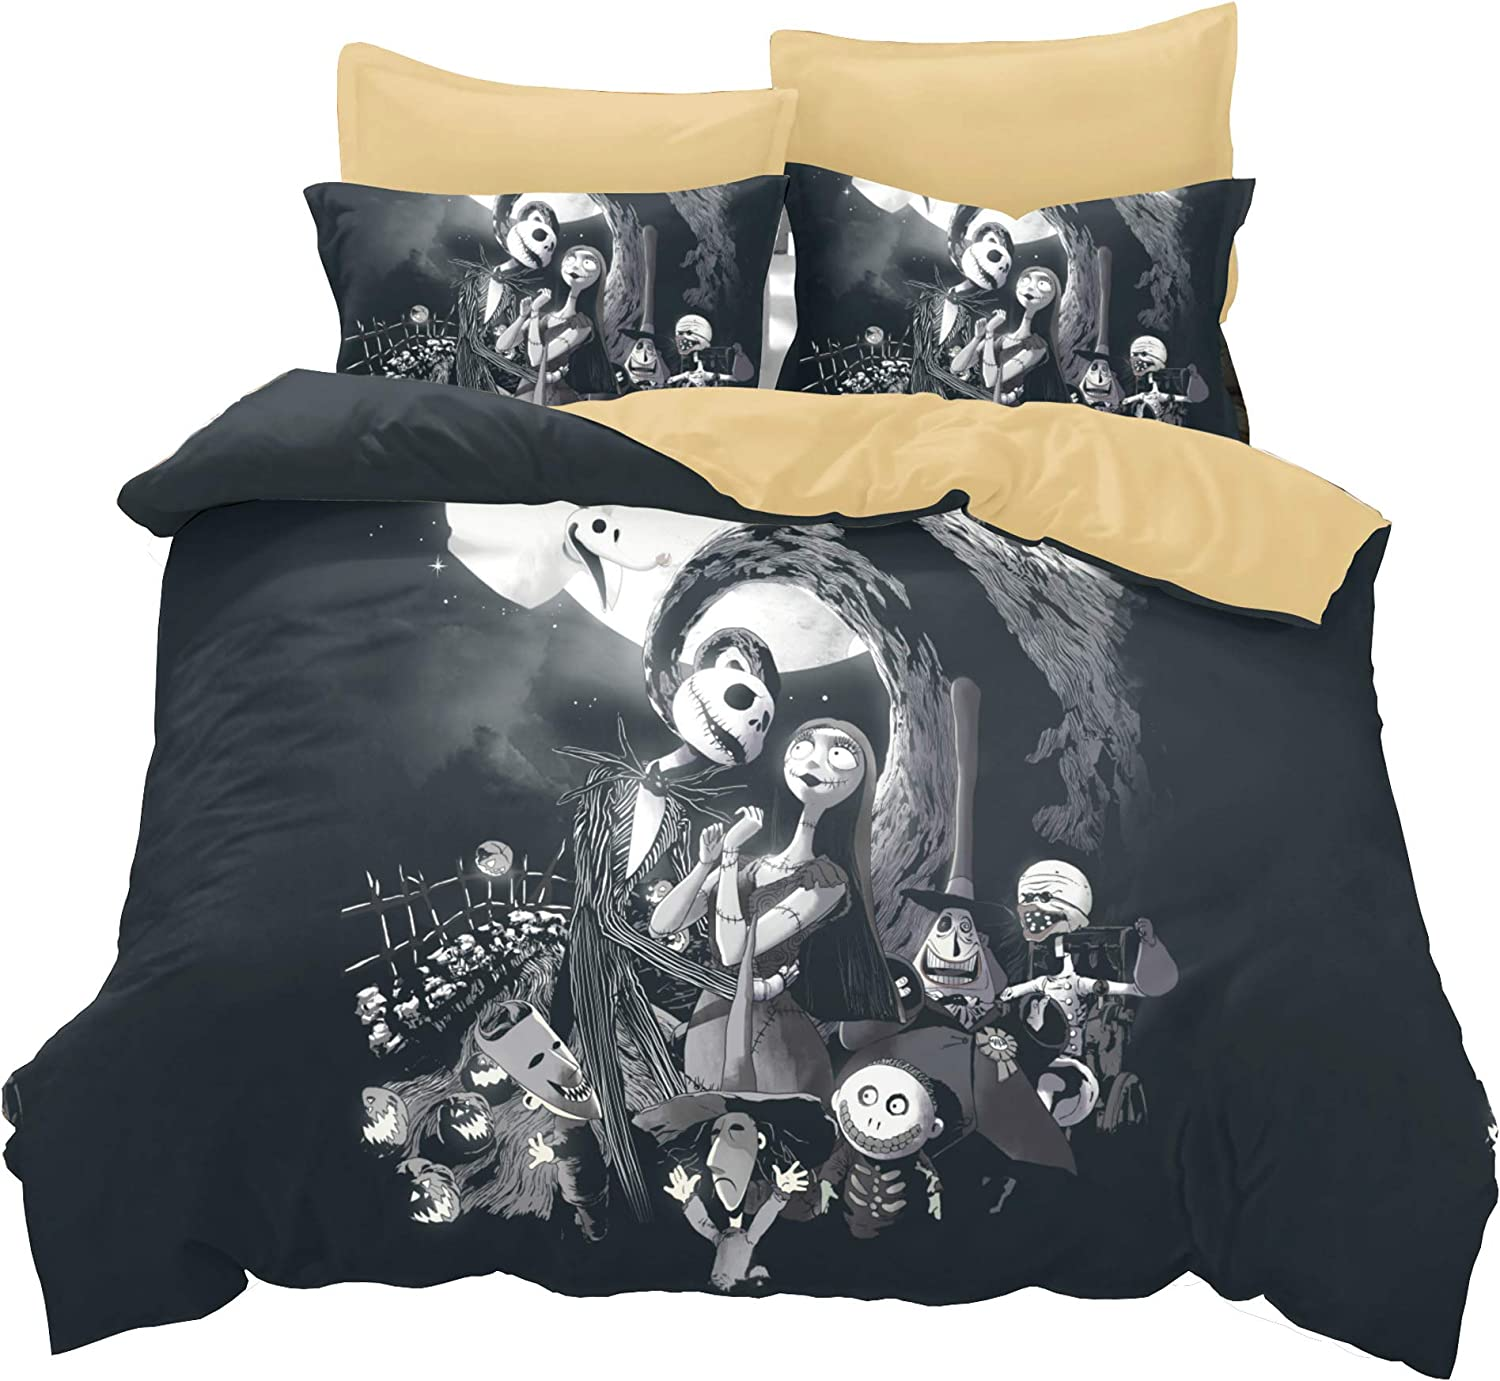 KTKRR Christmas Duvet Cover Set (no comforter),Scarecrow Style Nightmare Before Christmas 3pc Bedding Set, Duvet Cover with Pillowcase Gift 3D Terrorist Design (QUEEN, Black Christmas)